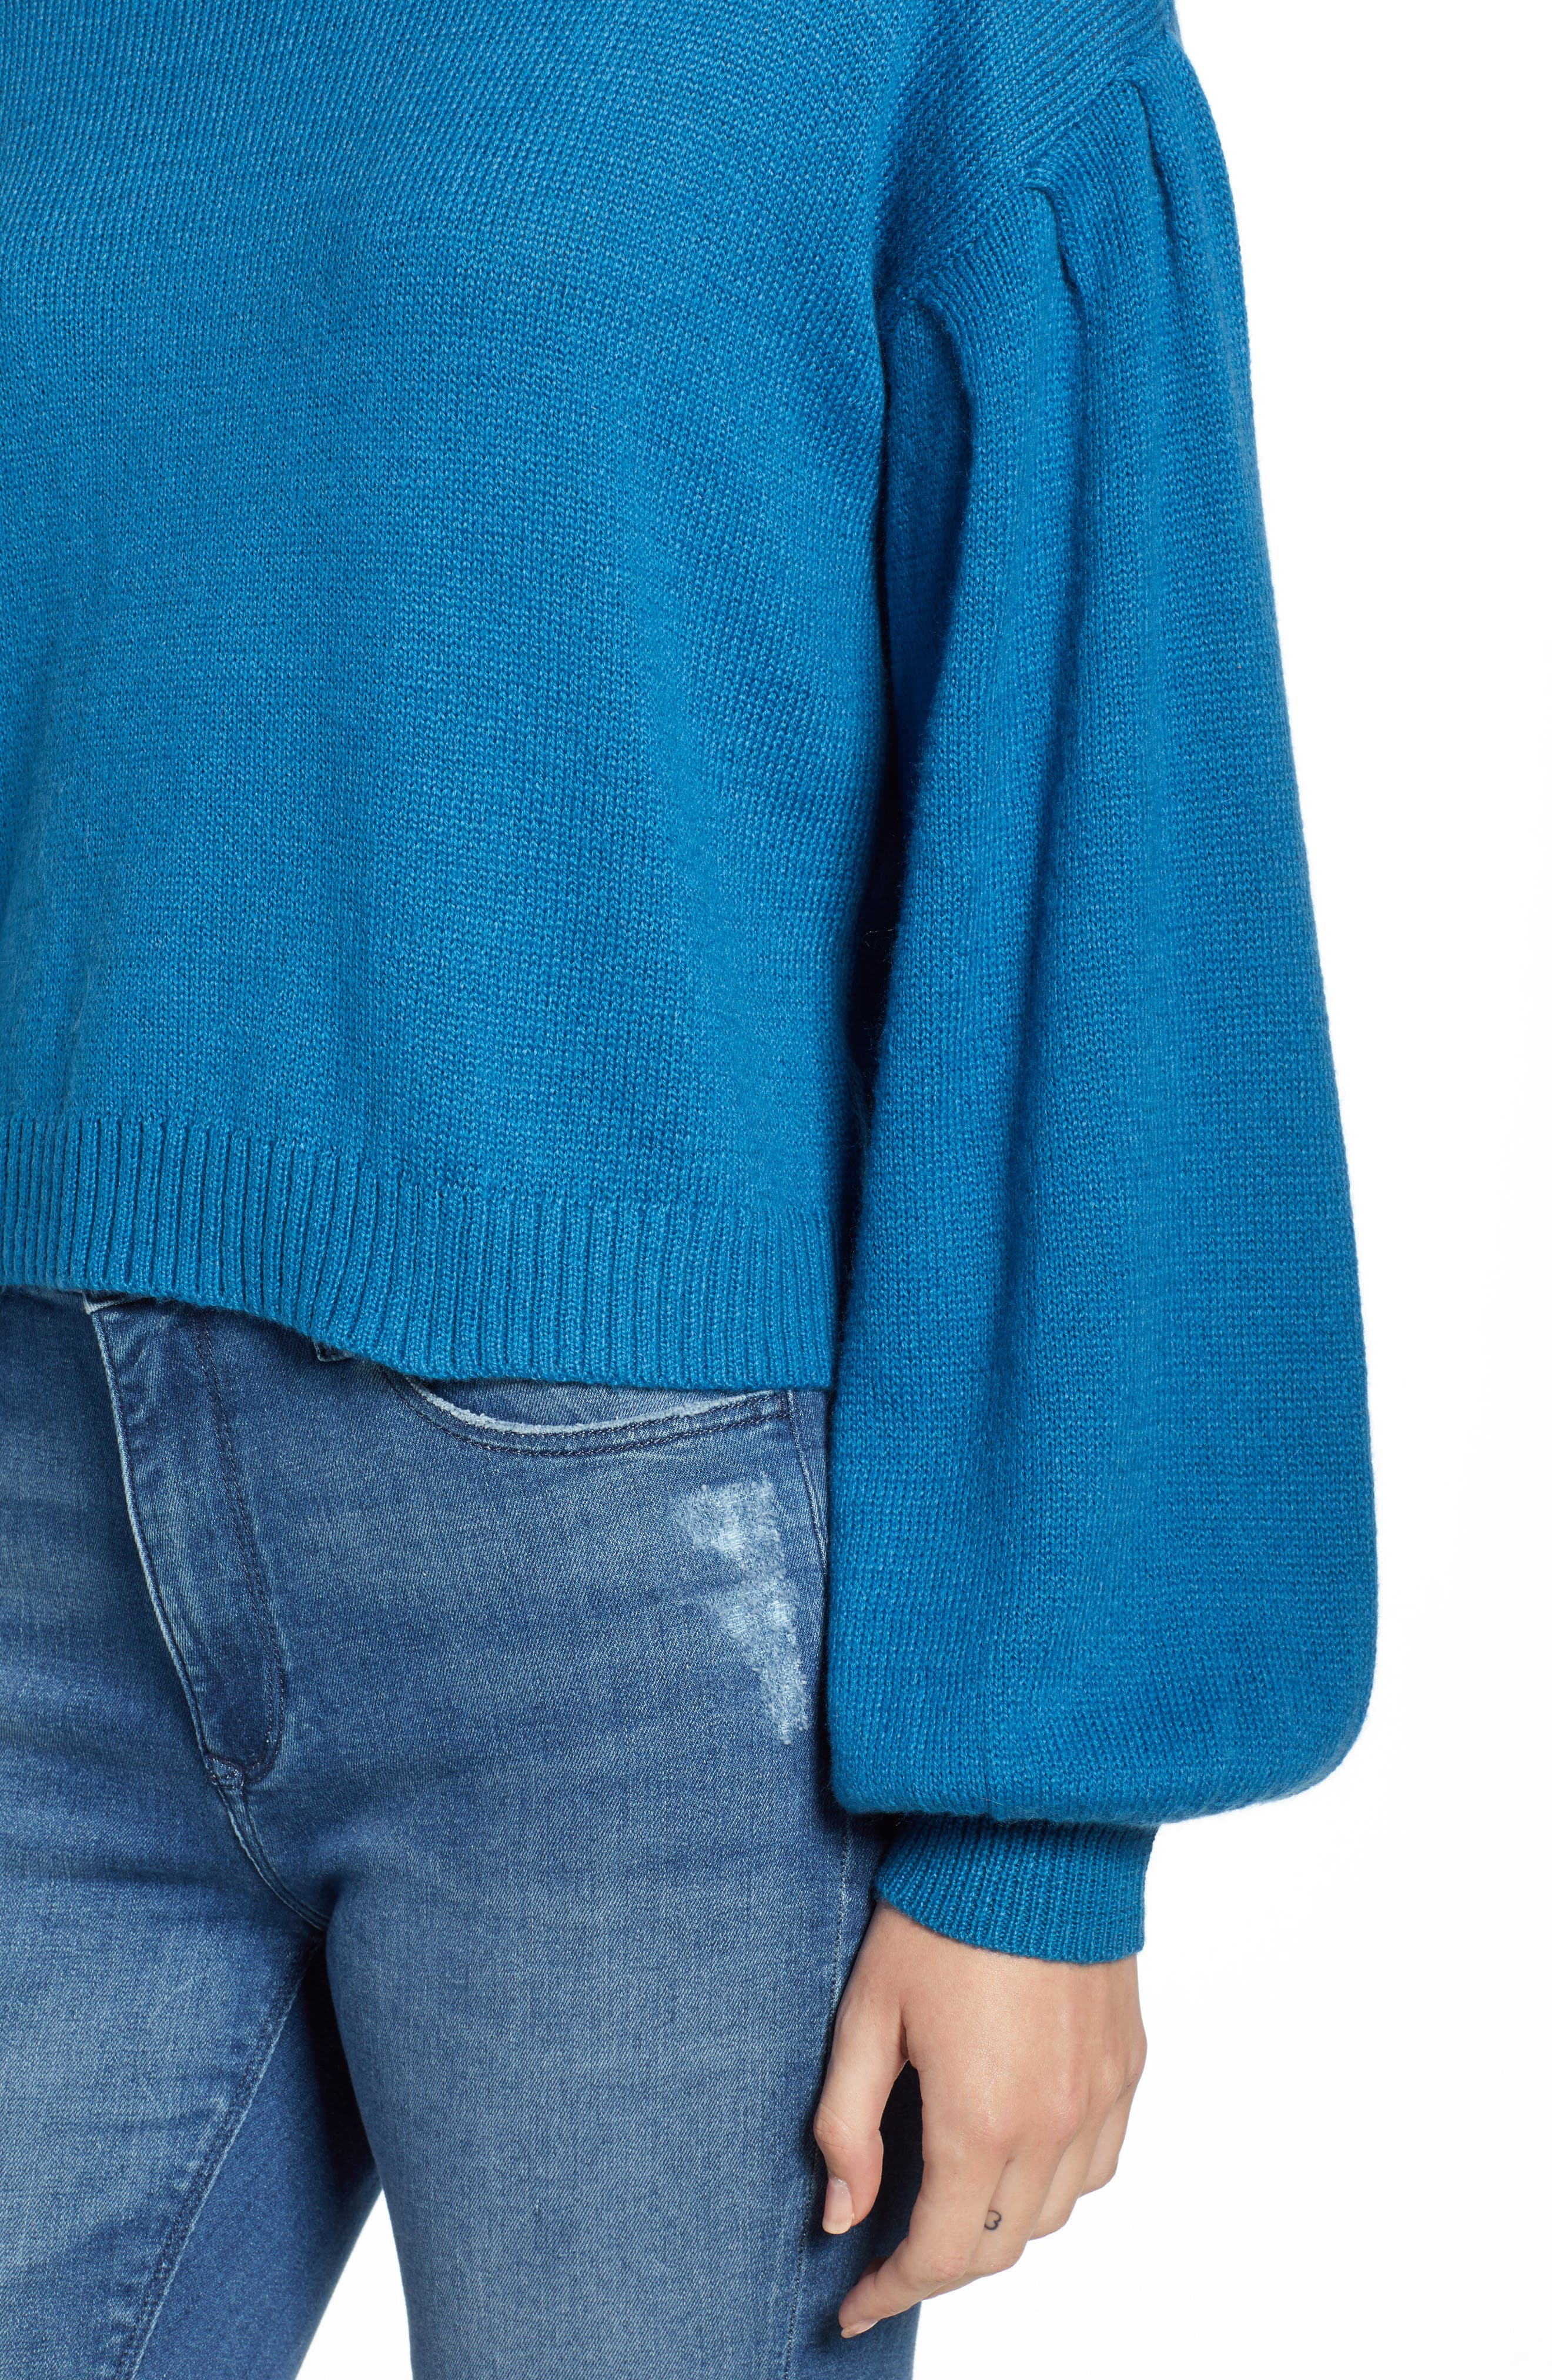 Blouson Sleeve Sweater,                             Alternate thumbnail 4, color,                             449